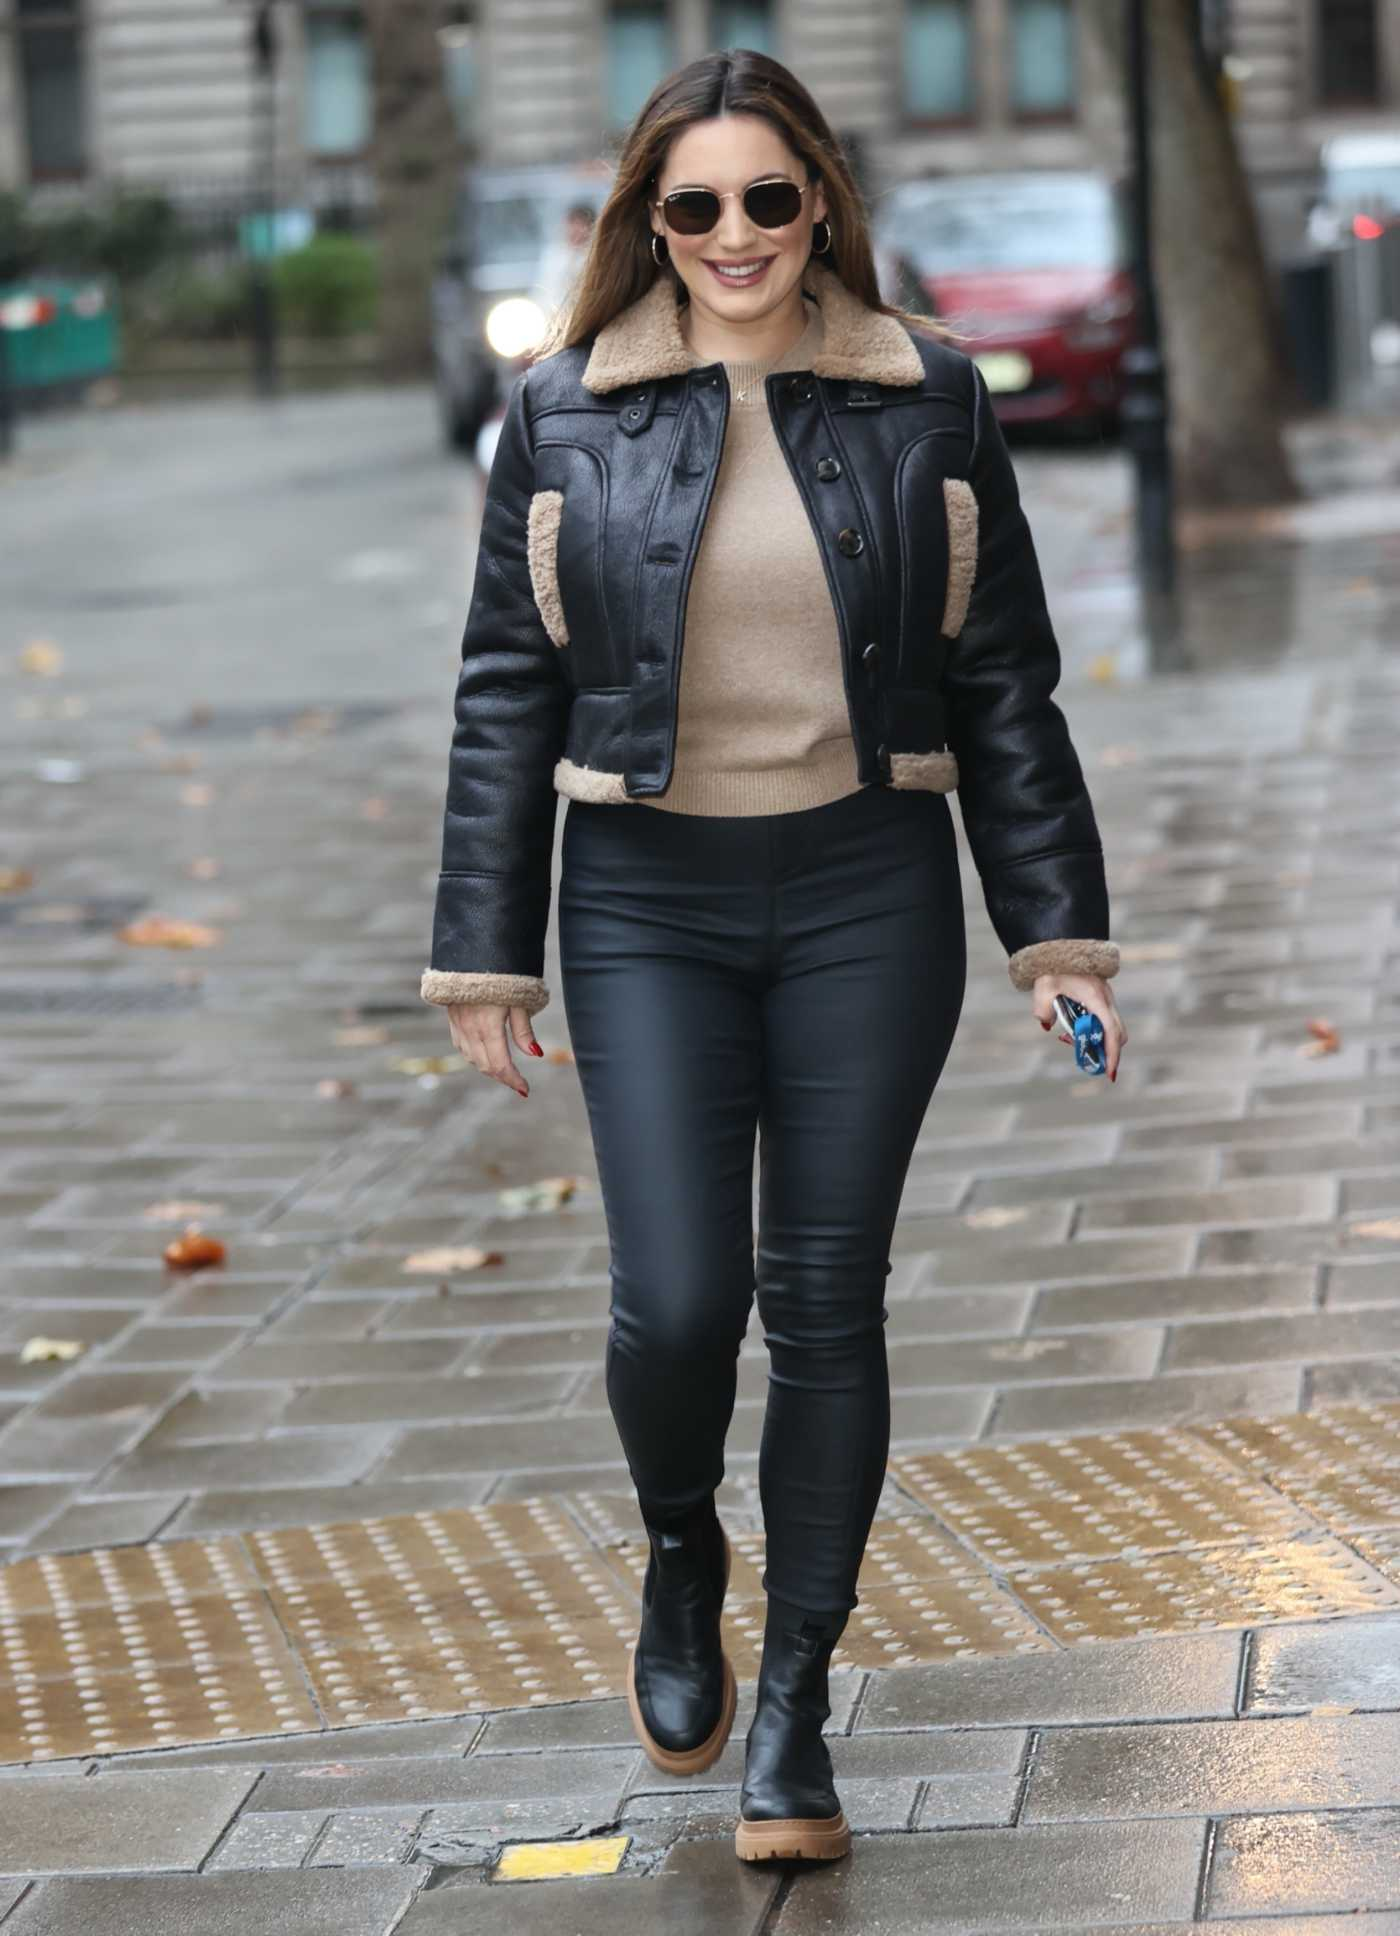 Kelly Brook in a Black Leather Jacket Arrives at the Heart Radio Station in London 11/20/2020